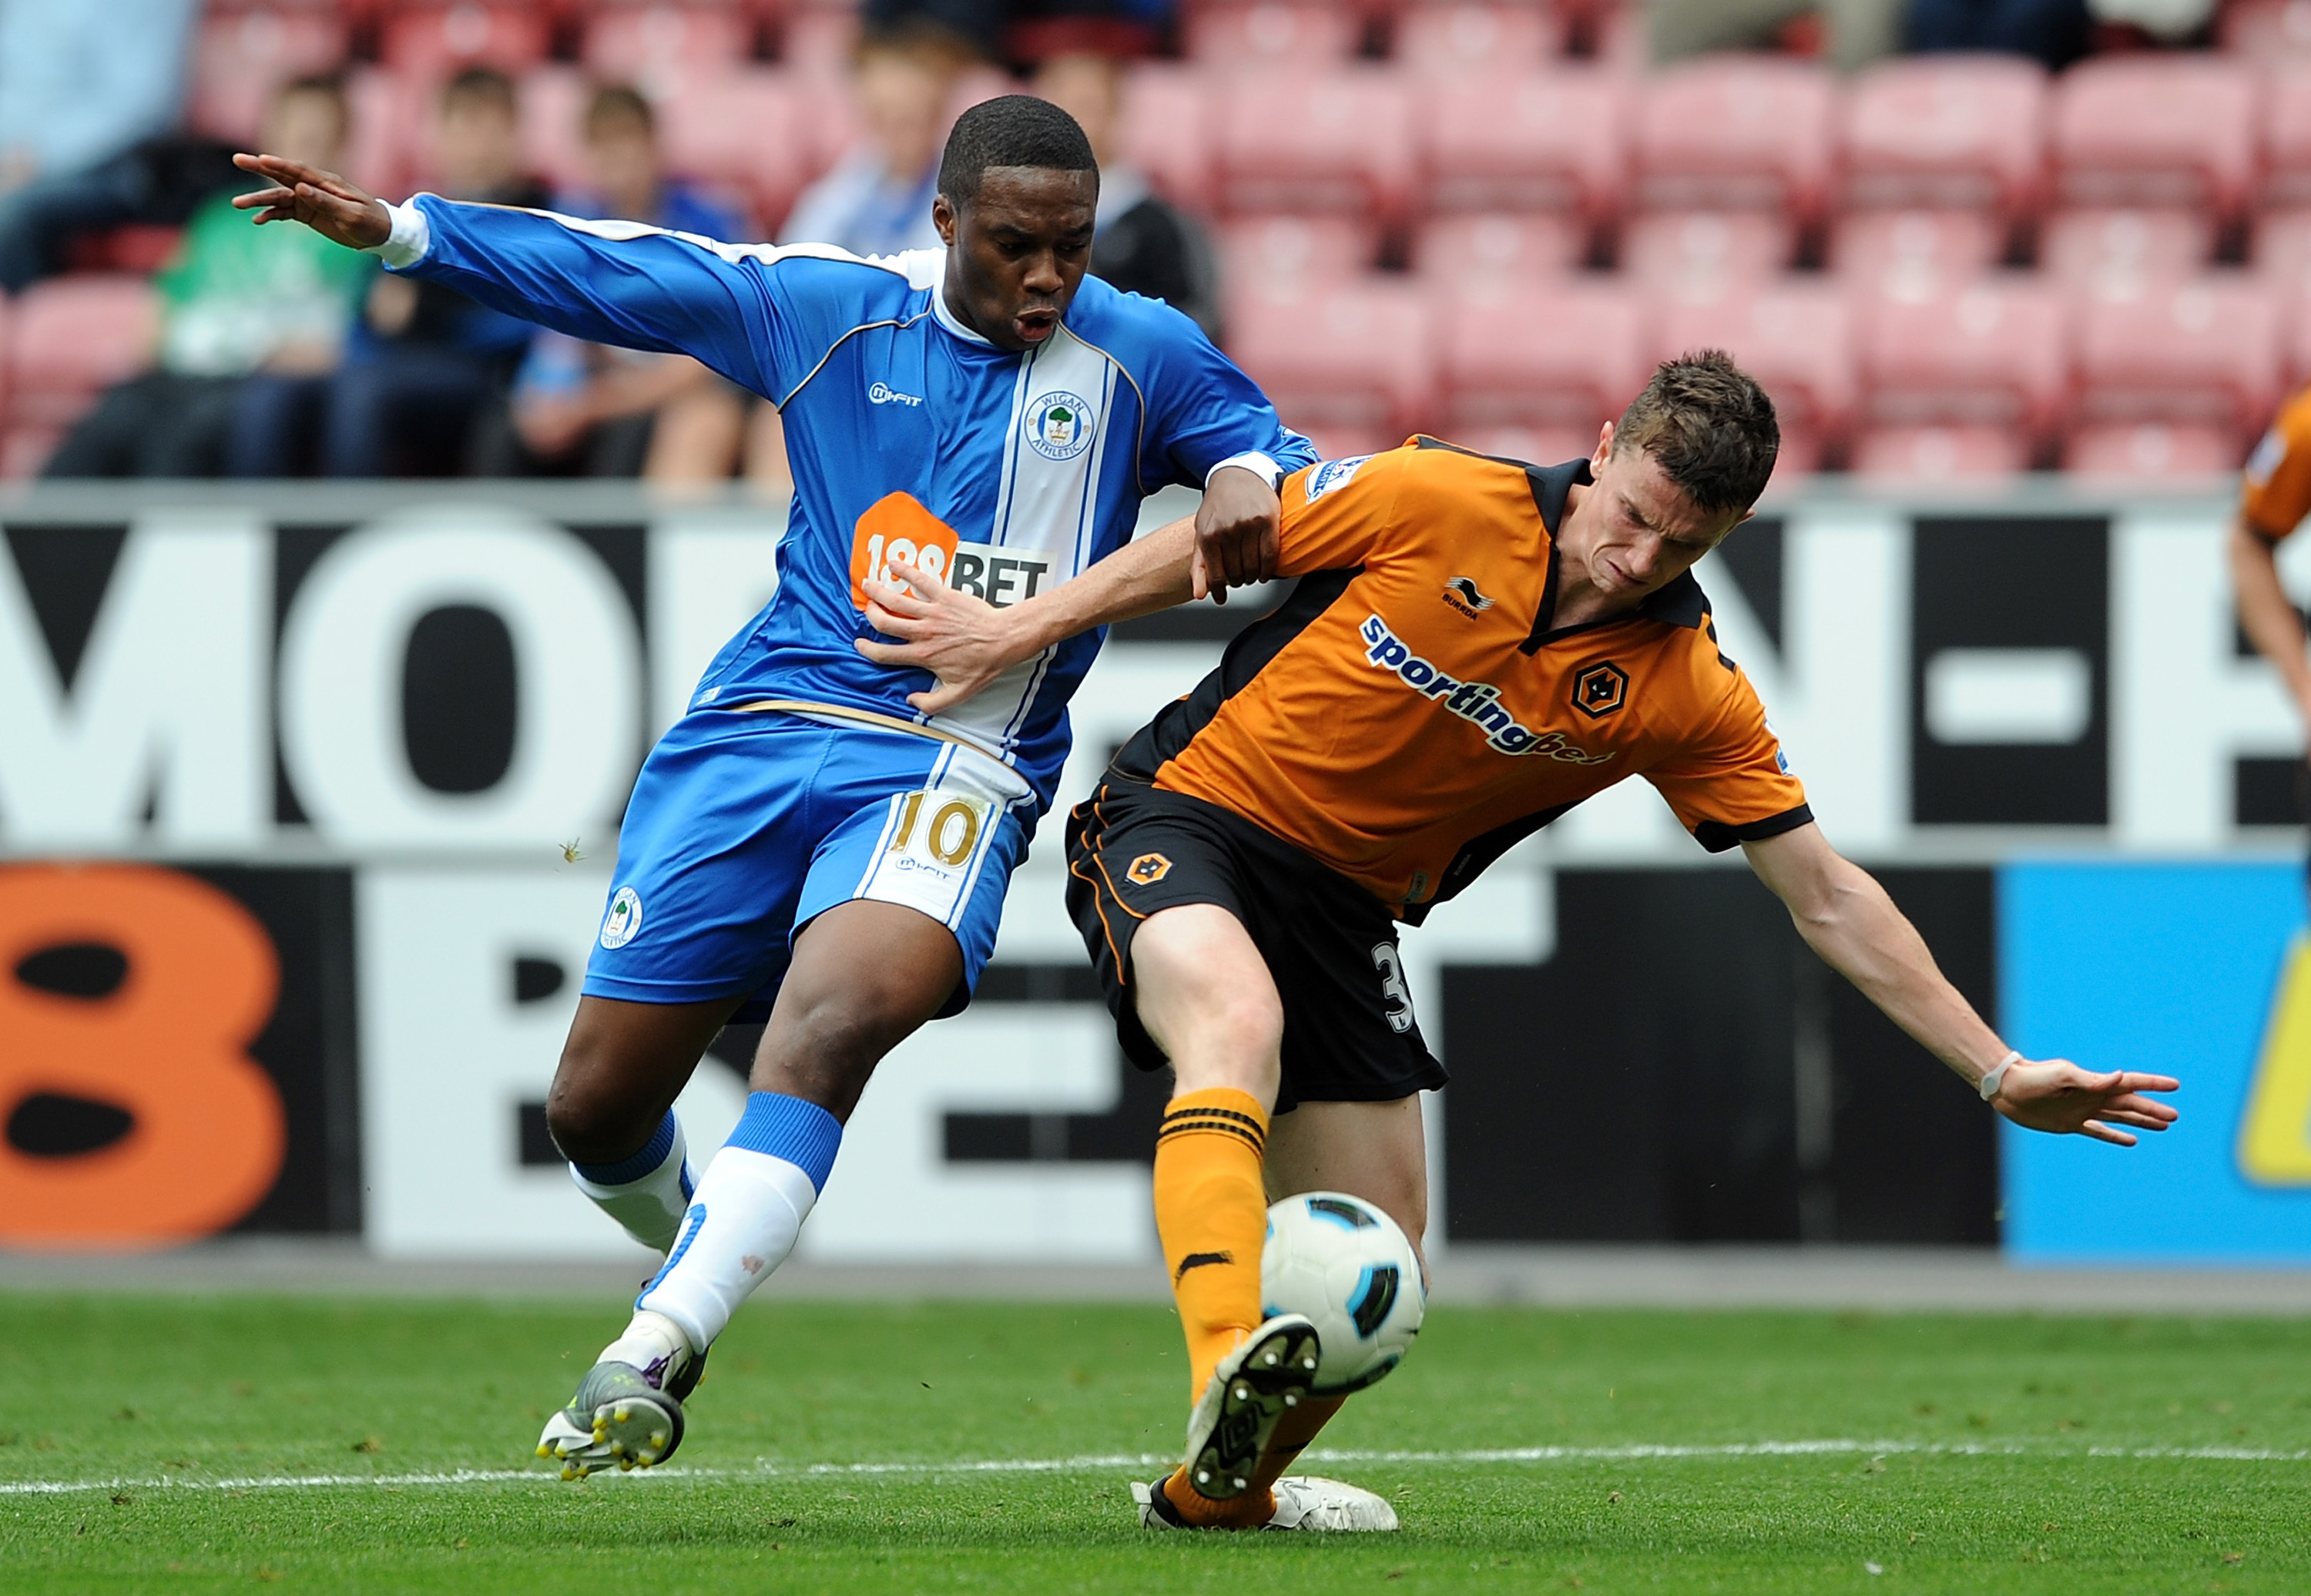 WIGAN, ENGLAND - OCTOBER 02: Charles N'Zogbia of Wigan Athletic competes with Kevin Foley of Wolverhampton Wanderers during the Barclays Premier League match between Wigan Athletic and Wolverhampton Wanderers at DW Stadium on October 2, 2010 in Wigan, Eng